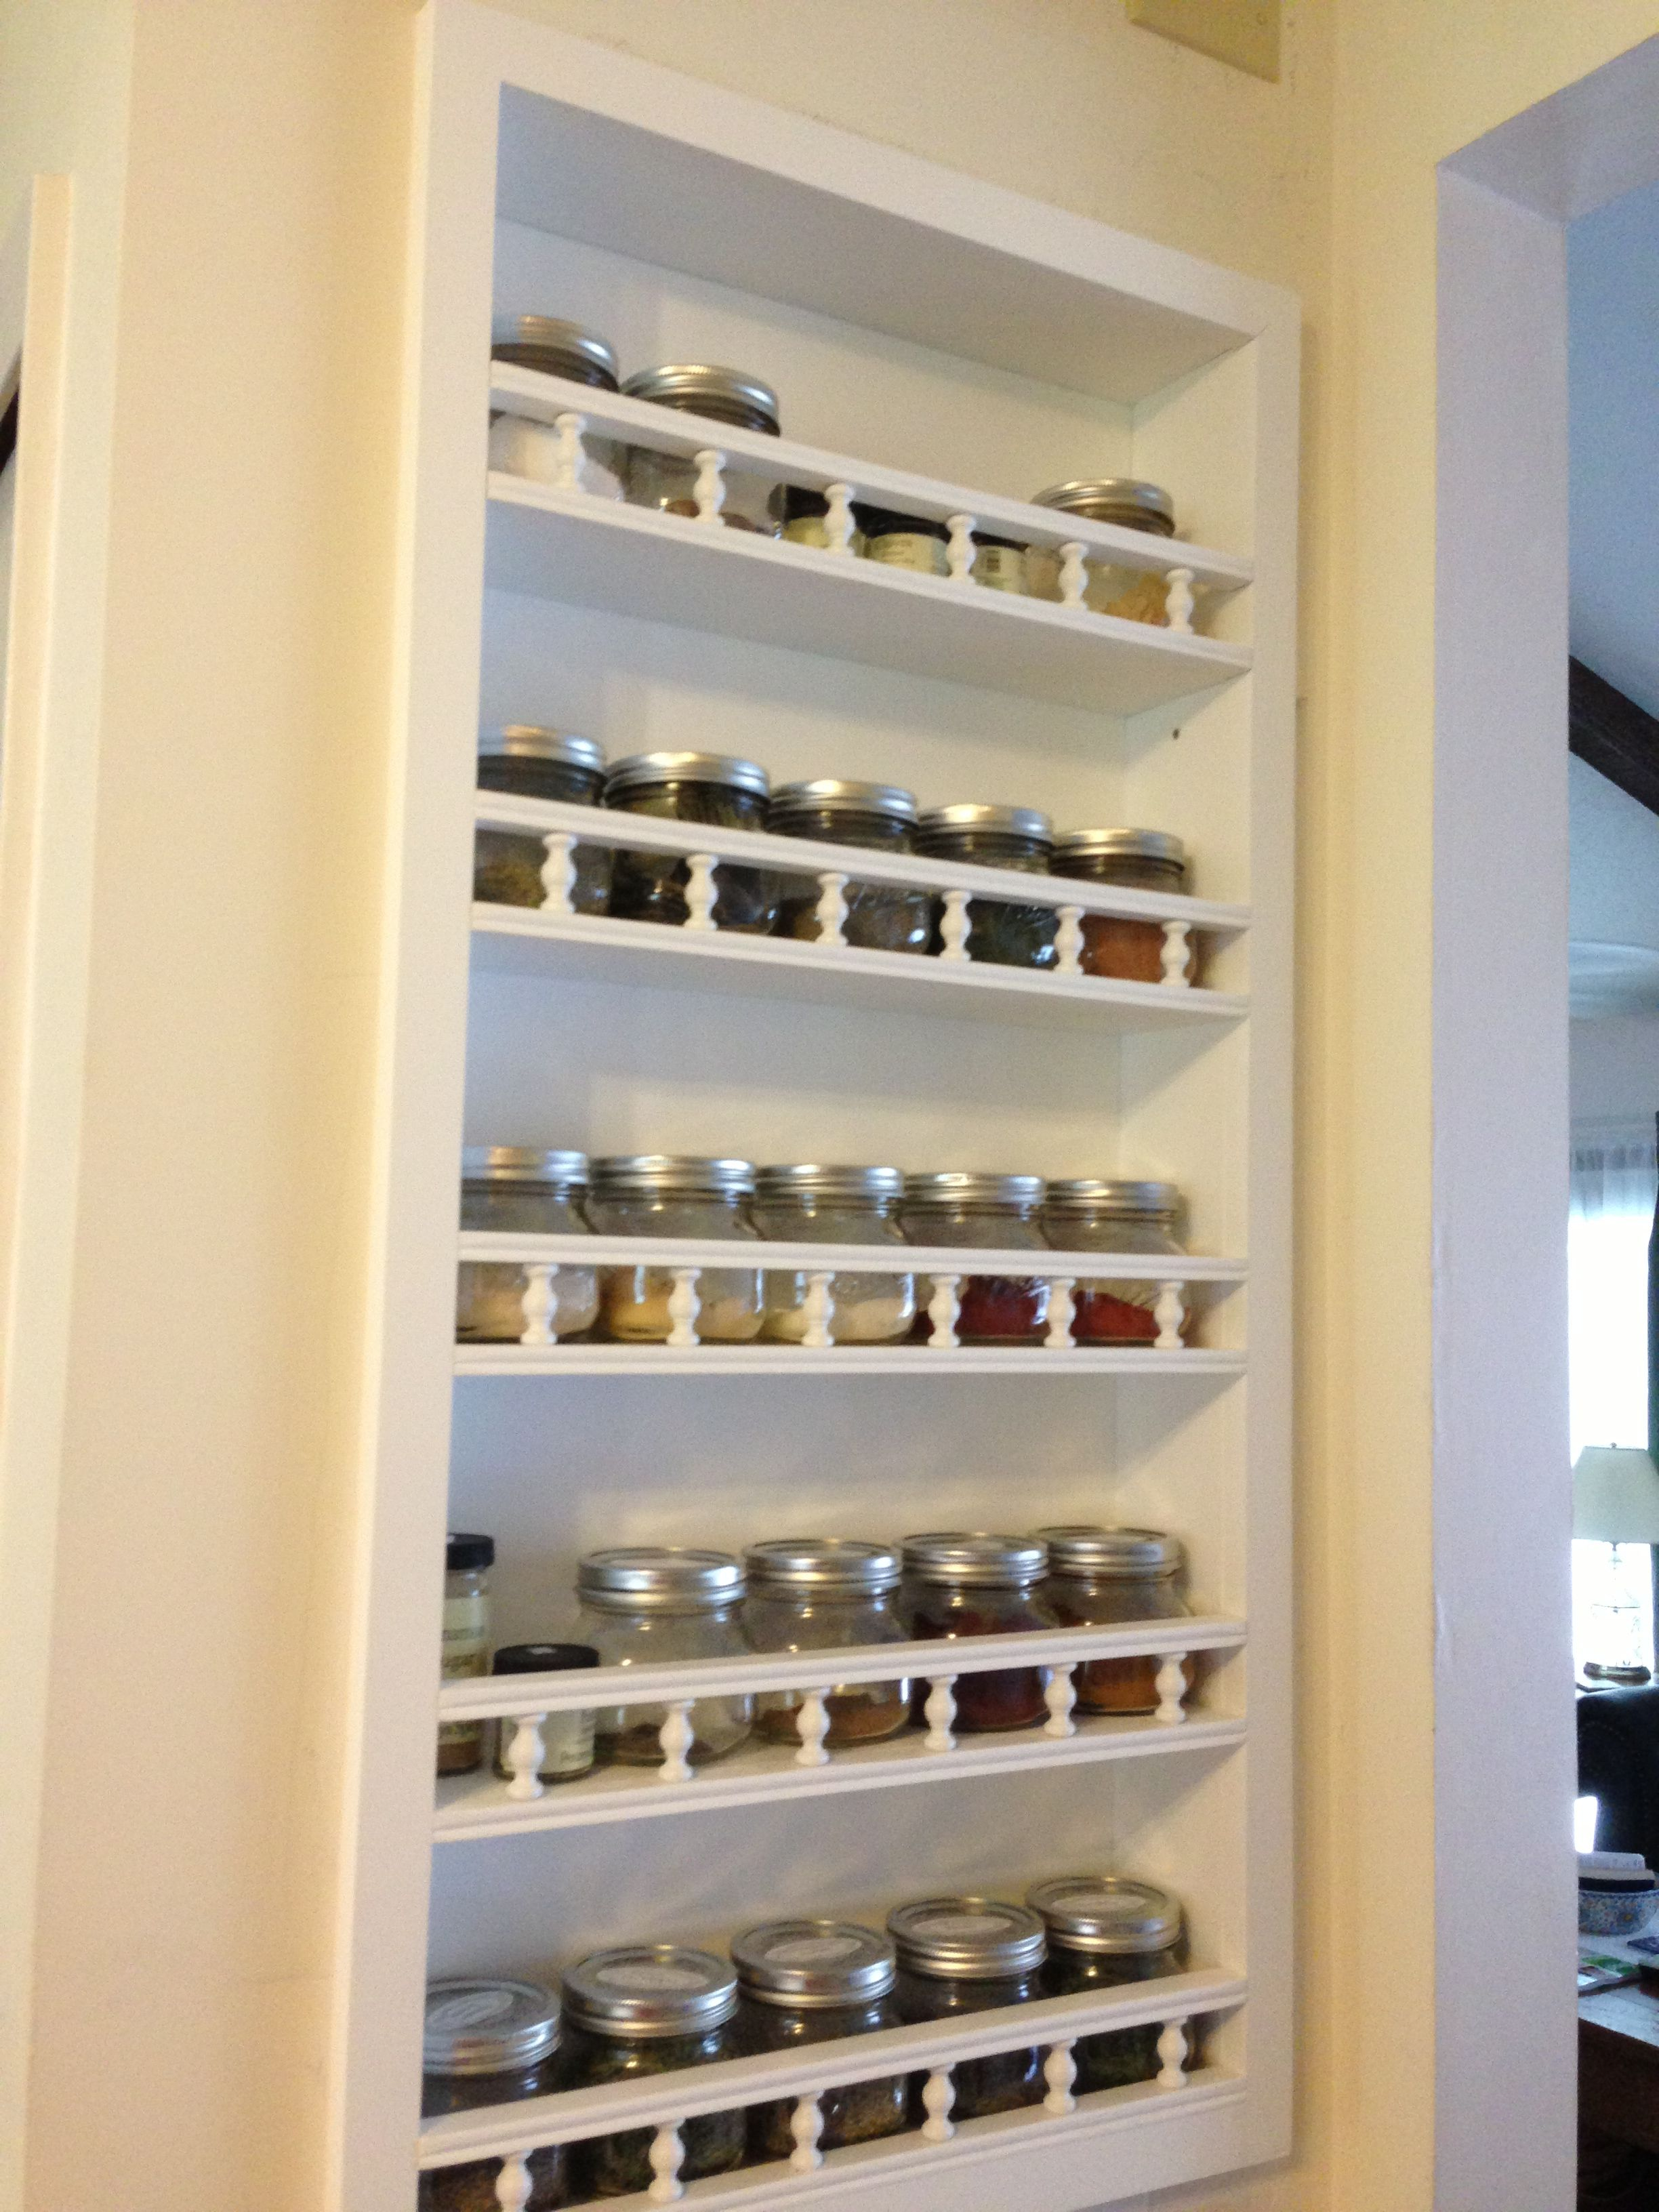 My husband made this built in spice rack to hold my herbs and spices.  I use pint mason jars from the local hardware store and herbs and spices from Penzeys.  :-).   Pantry remodel - exterior